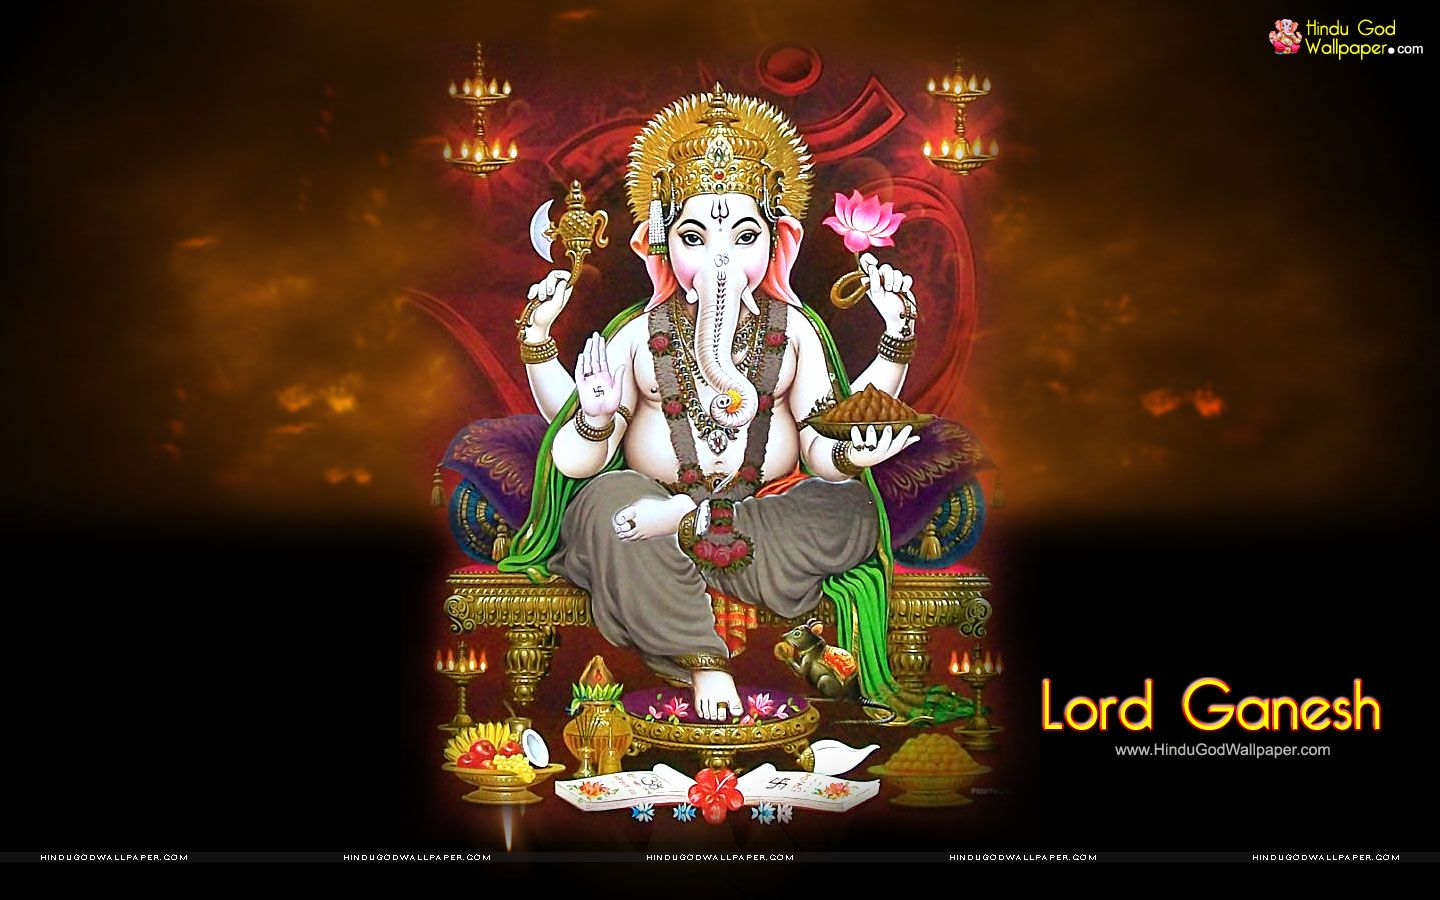 Maa Durga Hd Wallpaper 1080p For Pc Lord Ganesh Wallpapers Hd High Resolution Download Lord